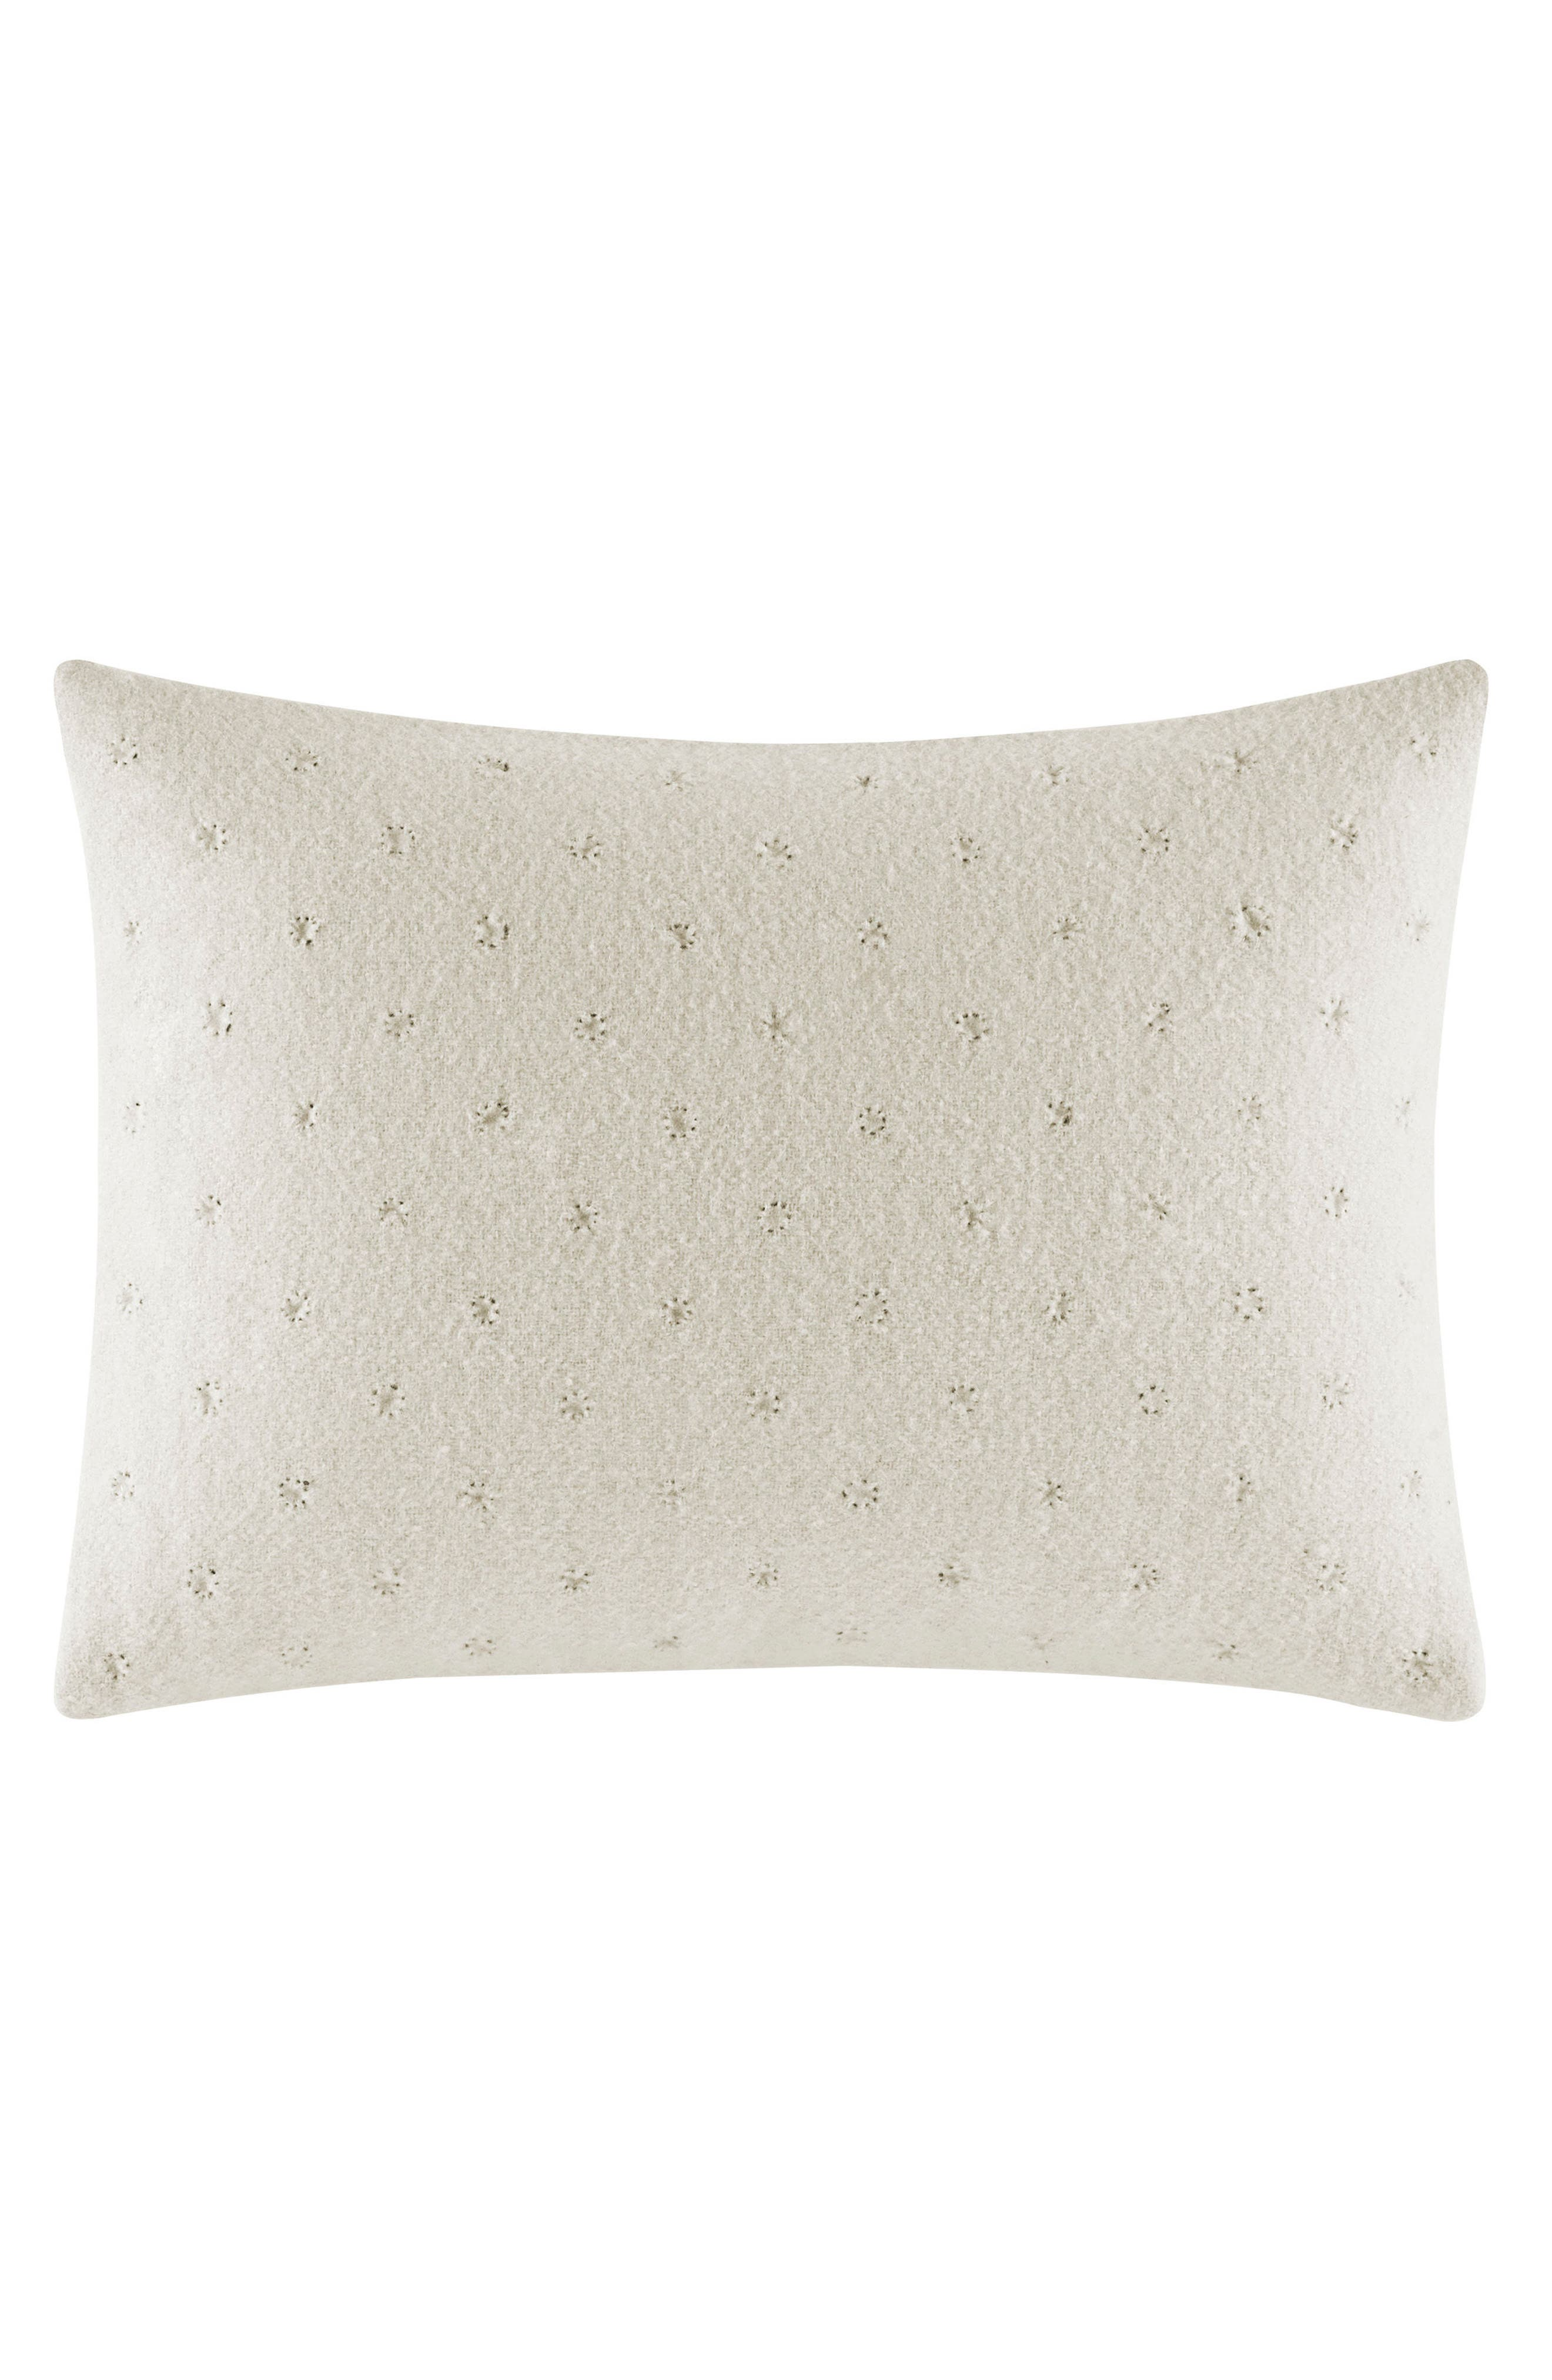 Vera Wang Passementerie Breakfast Accent Pillow